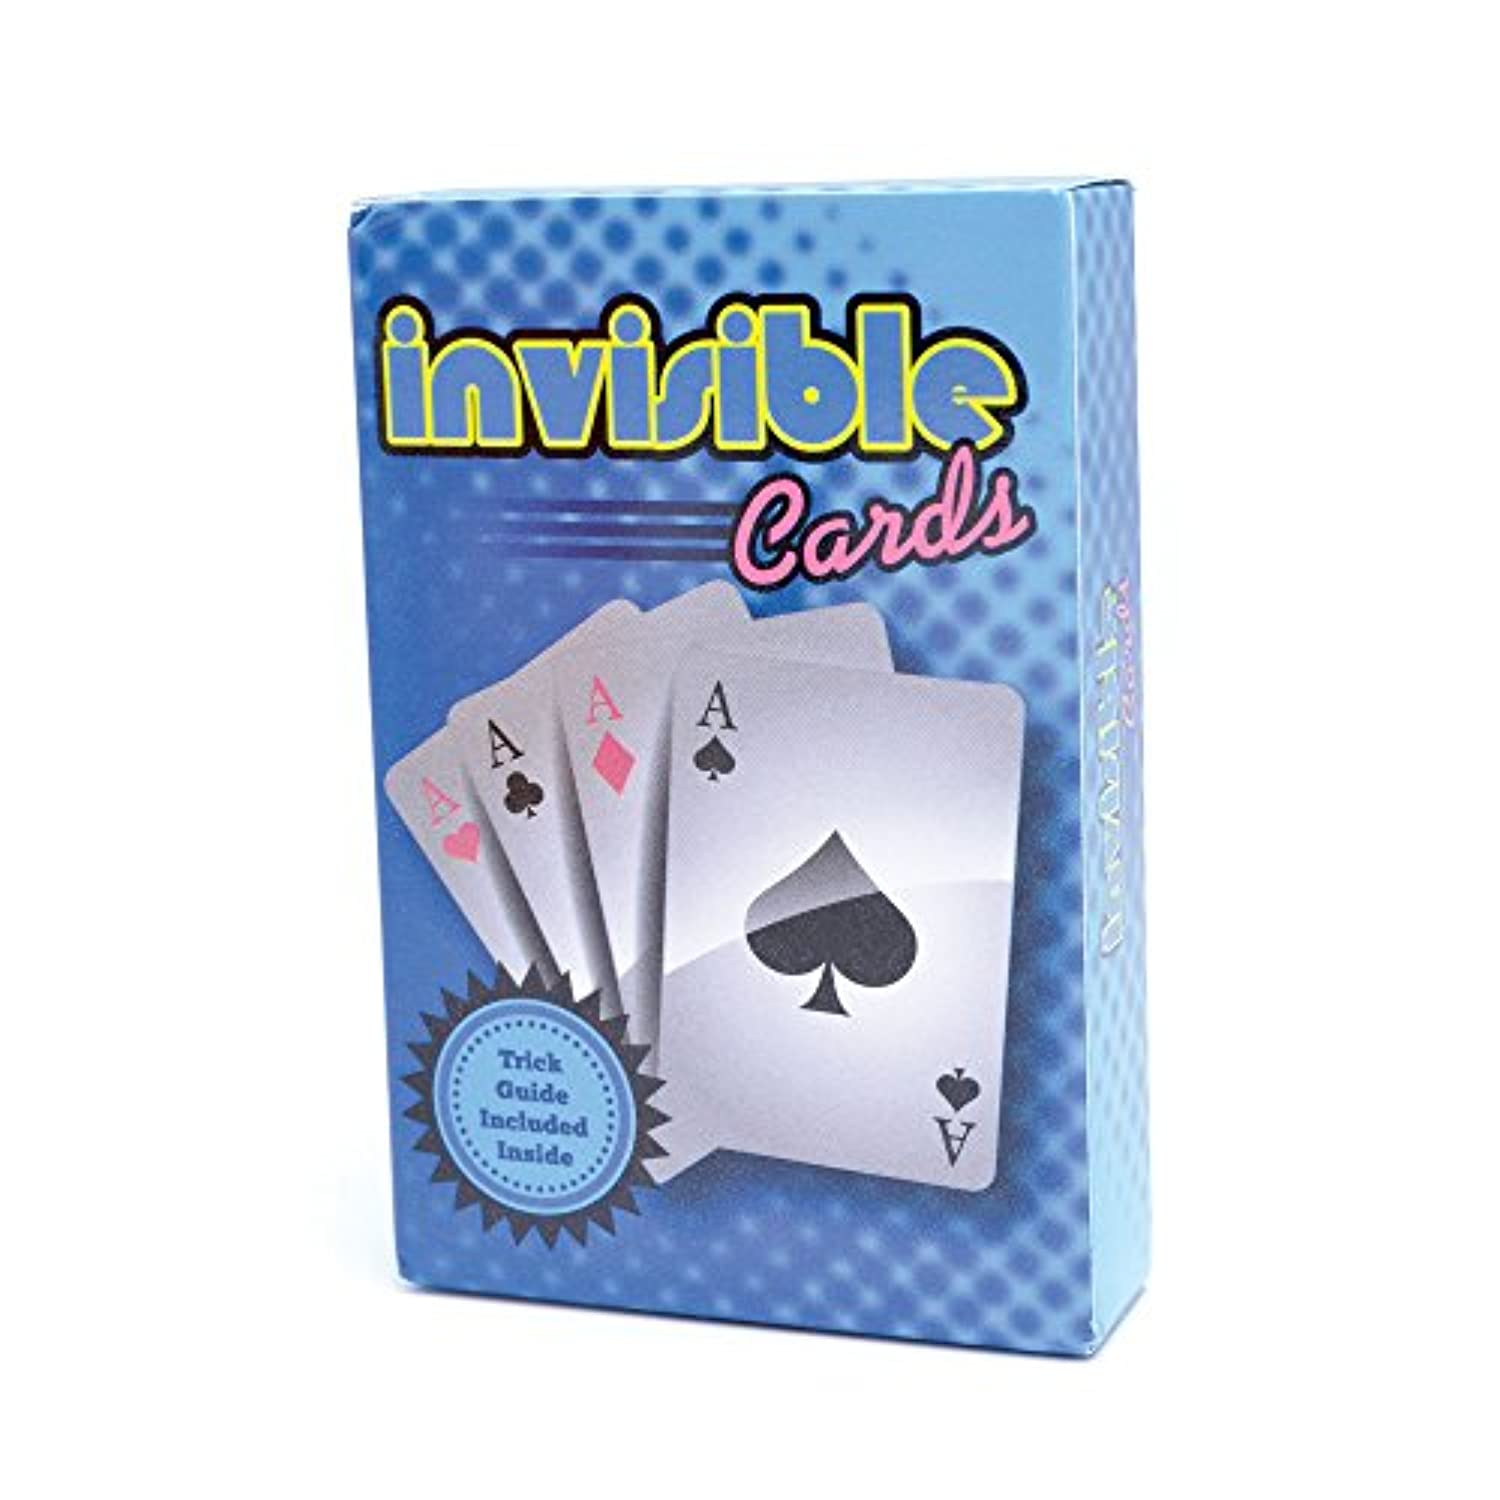 Bristol Novelty Trick Pack/Cards Nudist Blank Magic And Conjuring One Size - Multi